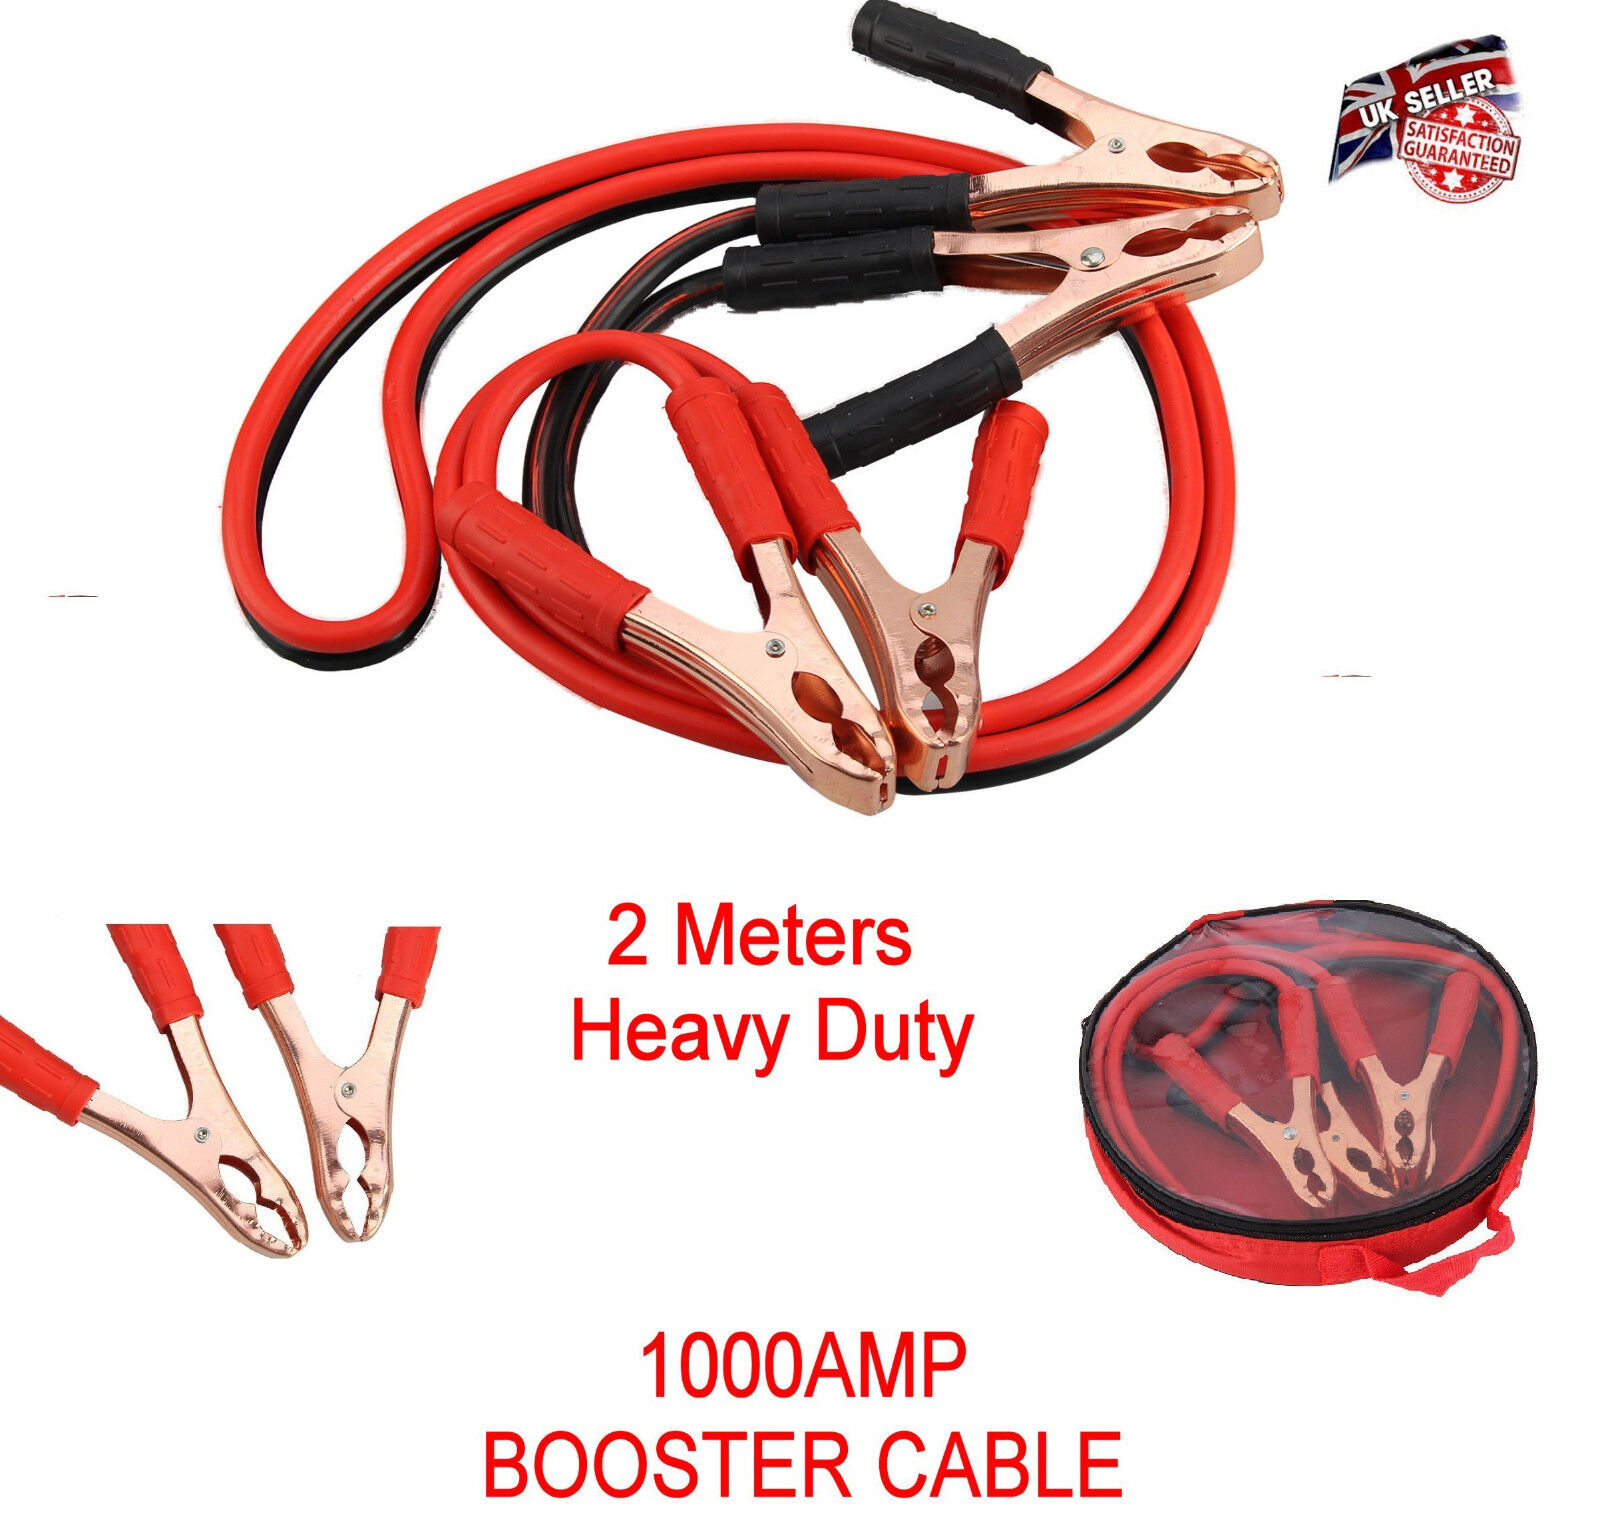 Heavy Duty Jump Leads Battery Start Cable Long Jumpleads Car Booster Van Boost